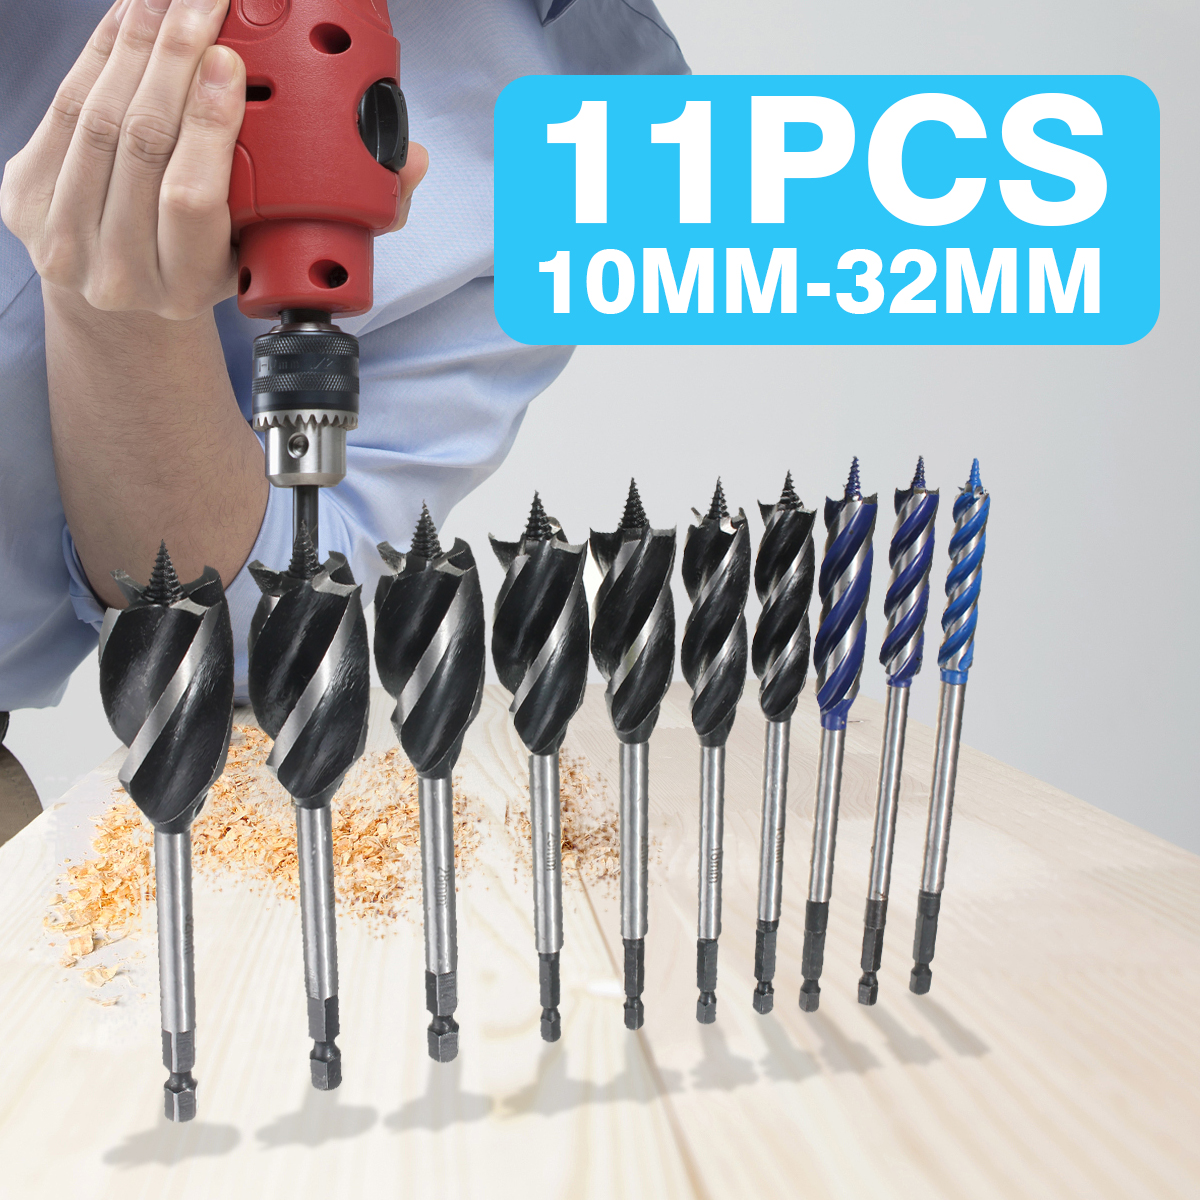 10mm-32mm Twist Drill Bit Set Wood Fast Cut Auger Carpenter Joiner Tool Drill Bit For Wood Cut Suit For Woodworking